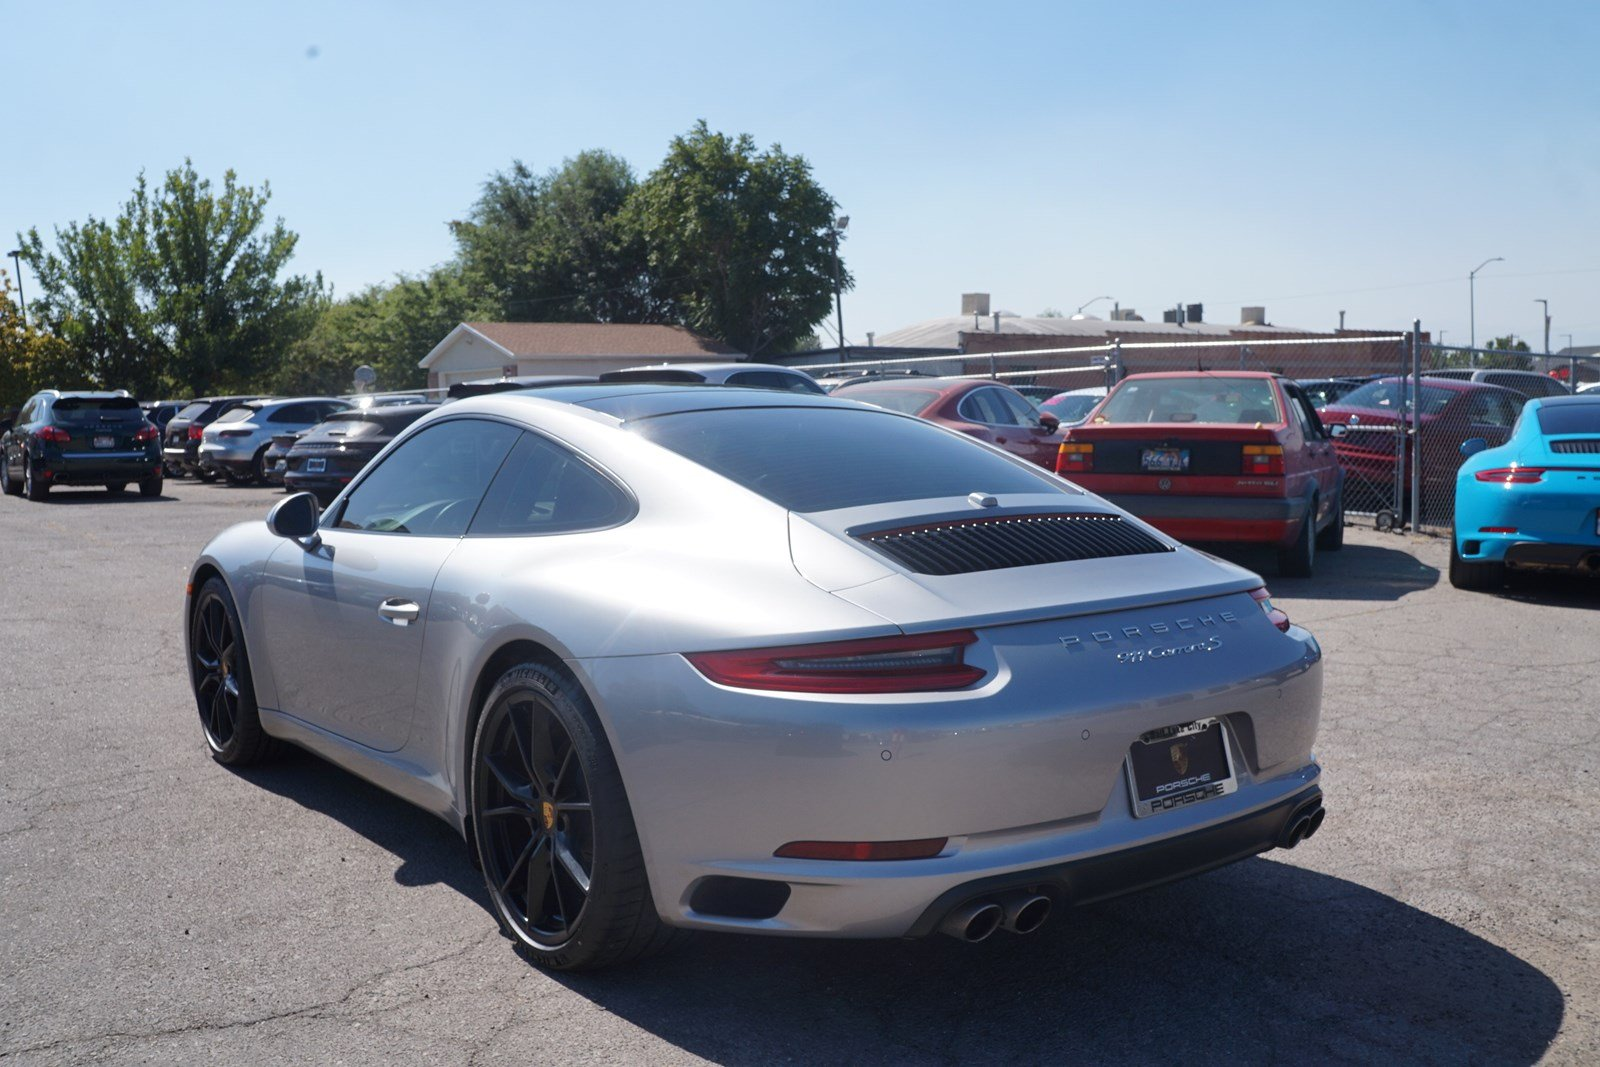 Certified Pre-Owned 2017 Porsche 911 Carrera S Coupe